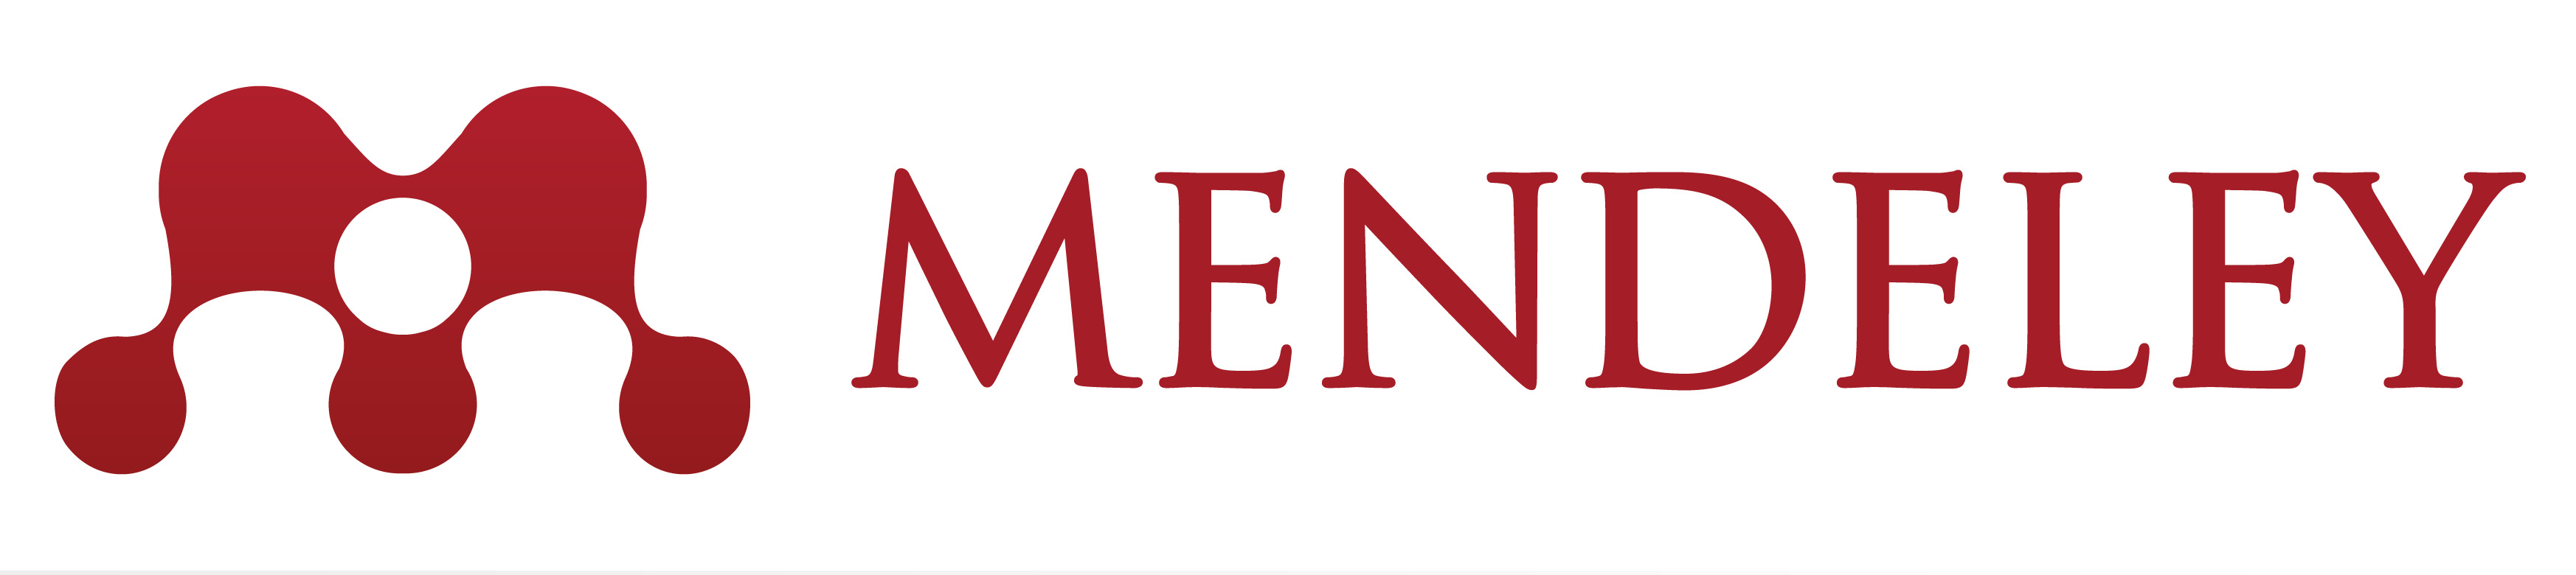 photo logo-mendeley.png